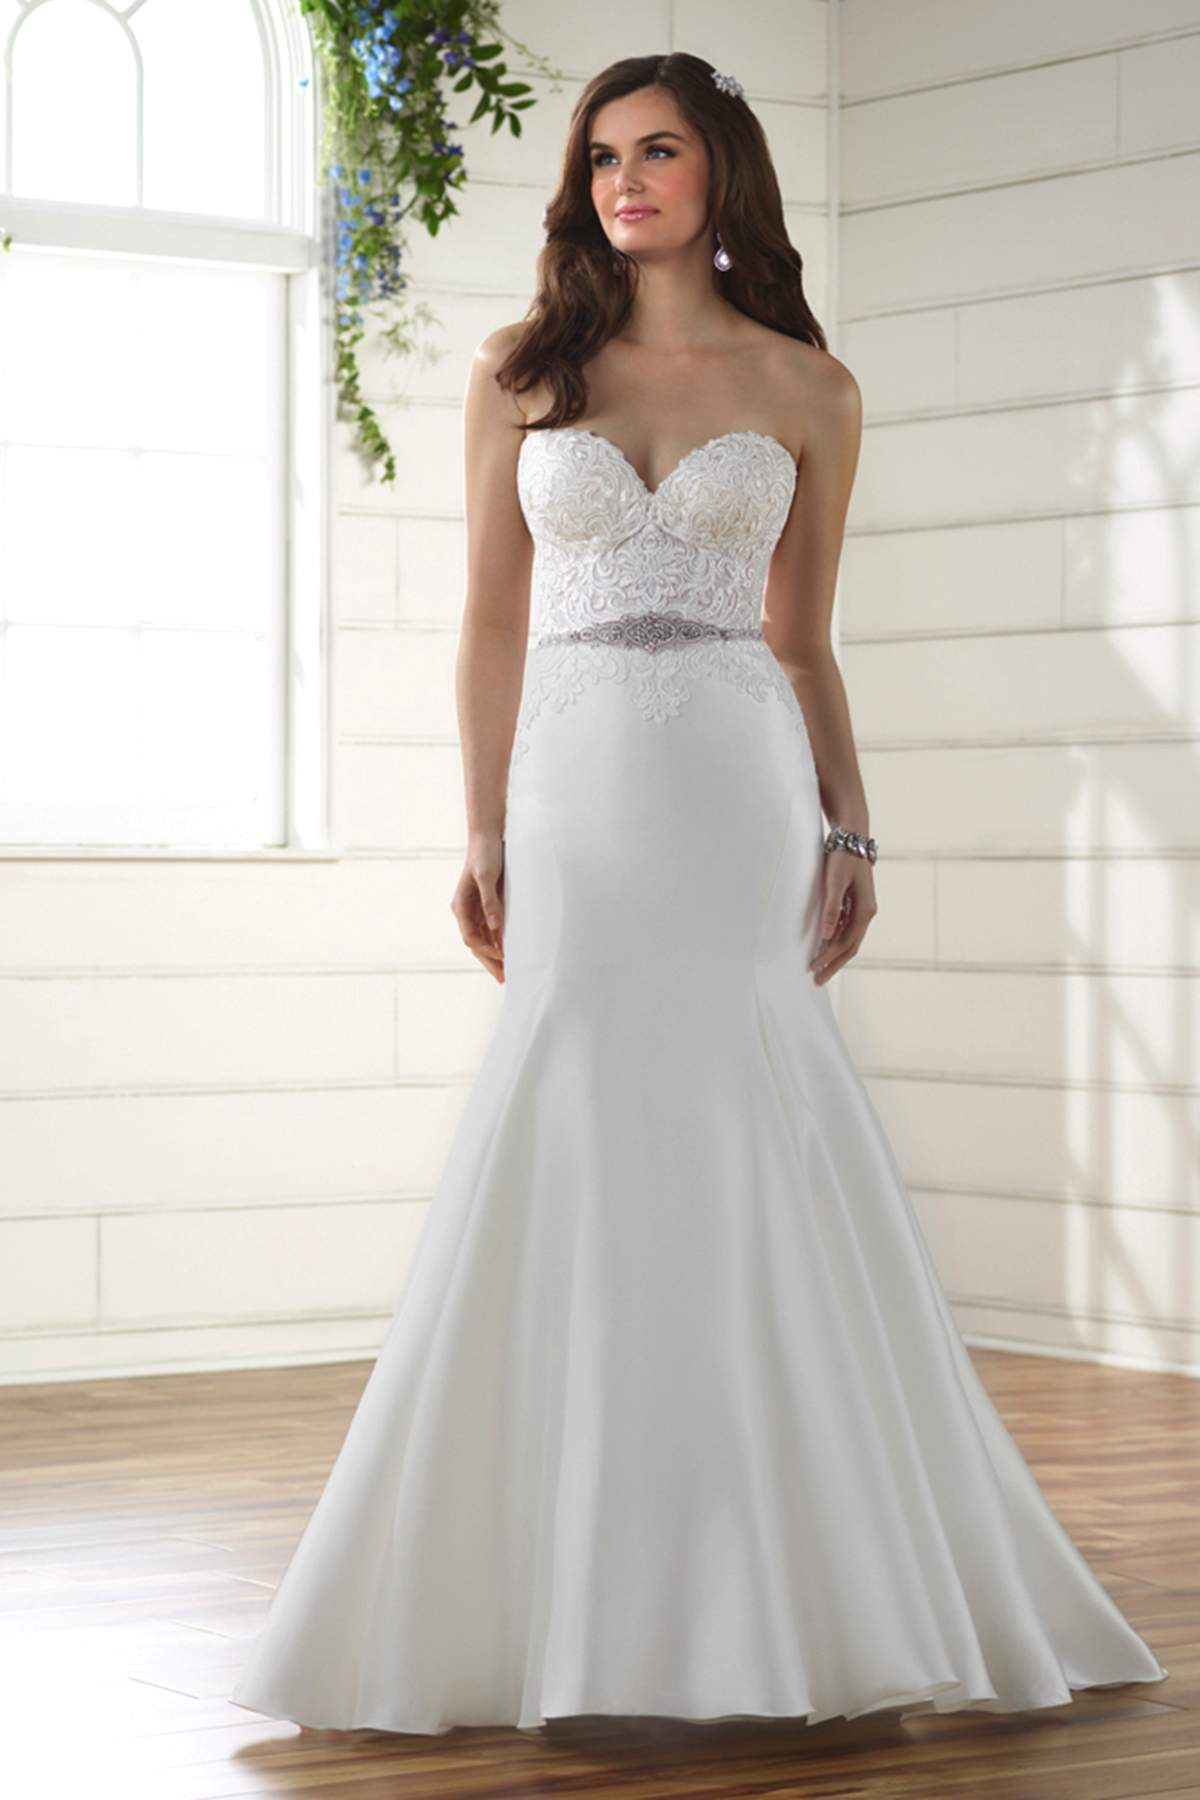 Style D2202 by Essense of Australia - Find Your Dream Dress